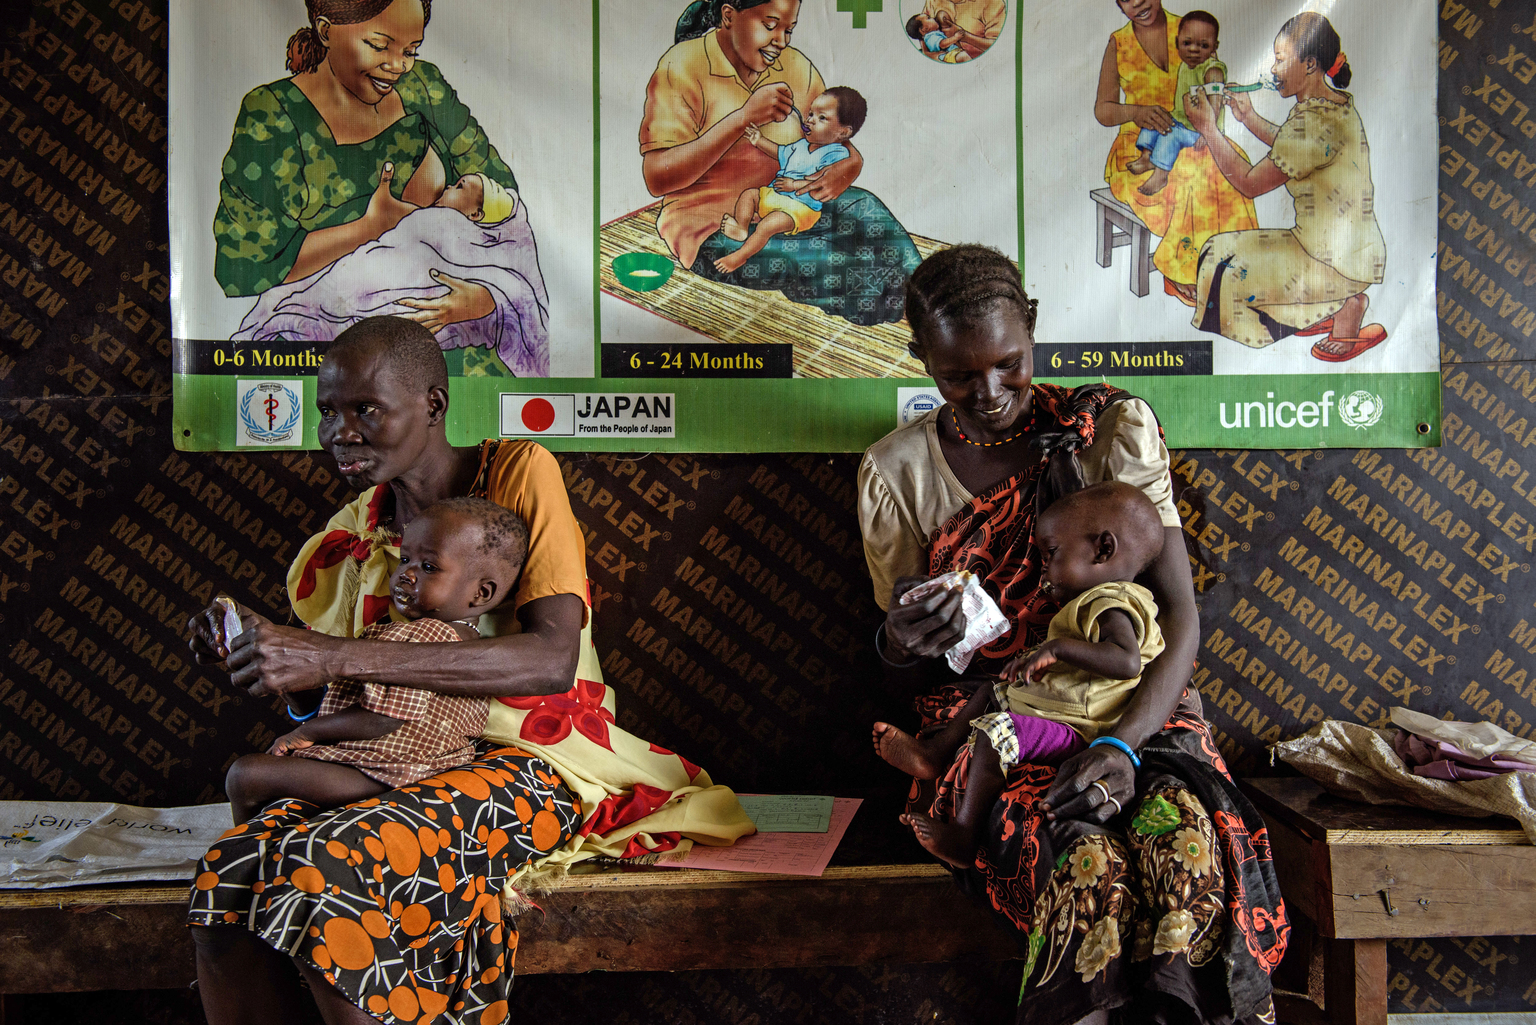 (right) Angelina Nyakan, 30, feeds ready-to-use therapeutic food (RUTF) peanut-paste to her seven-month-old daughter Nyamer Pok during a consultation in the World Relief health centre in the Protection of Civilians site in Bentiu, South Sudan, Wednesday 3 May 2017. Nyamer was enrolled on the outpatient therapeutic programme (OTP) one week ago after being diagnosed with malnutrition. This was the first of several weekly follow-ups, and her condition has improved. Angelina has another child, who is healthy.  The nutrition situation in South Sudan remains dire as the peak lean season approaches. In May 2017, UNICEF and partners screened 149,655 children (six to 59 months) with 6,068 identified with severe acute malnutrition (SAM) and 18,892 with moderate acute malnutrition (MAM). Screenings in nine out of 10 states indicate malnutrition rates above the emergency level. Countrywide, an estimated 5.5 million people are now food insecure.  The security situation across the country remains unstable, severely impacting sustained humanitarian access. UNICEF continues to build upon existing community networks and other community-based resources to assess, plan and implement the humanitarian response, in order to strengthen local capacities and ensure accountability to affected populations.